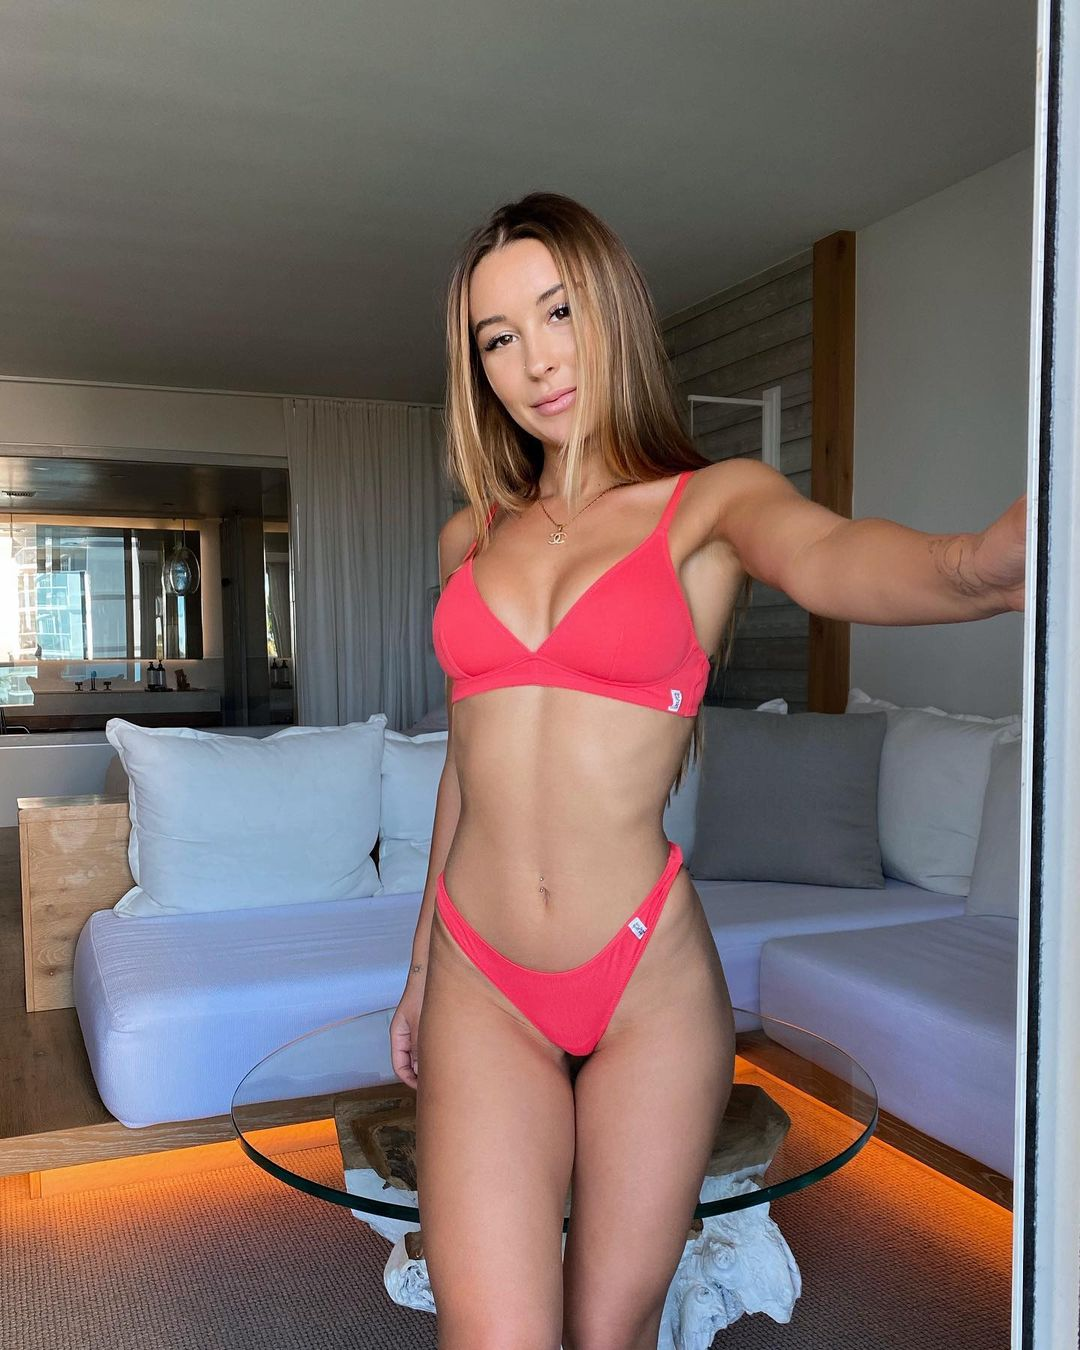 NICKY G nickygile Fascinates Followers with Her Naked Tits 4